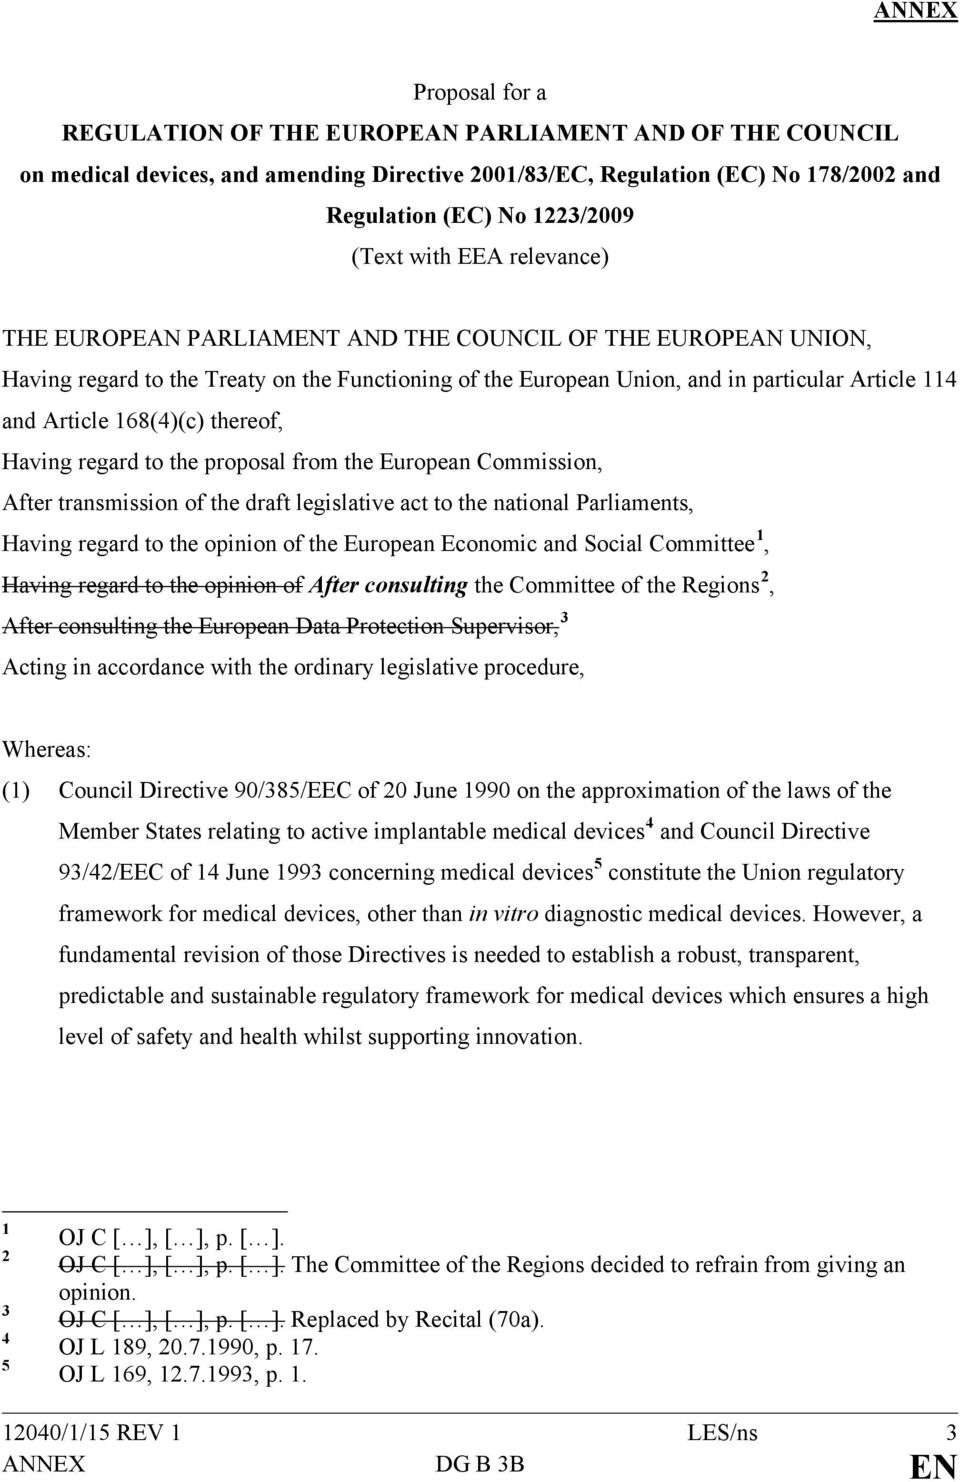 168(4)(c) thereof, Having regard to the proposal from the European Commission, After transmission of the draft legislative act to the national Parliaments, Having regard to the opinion of the